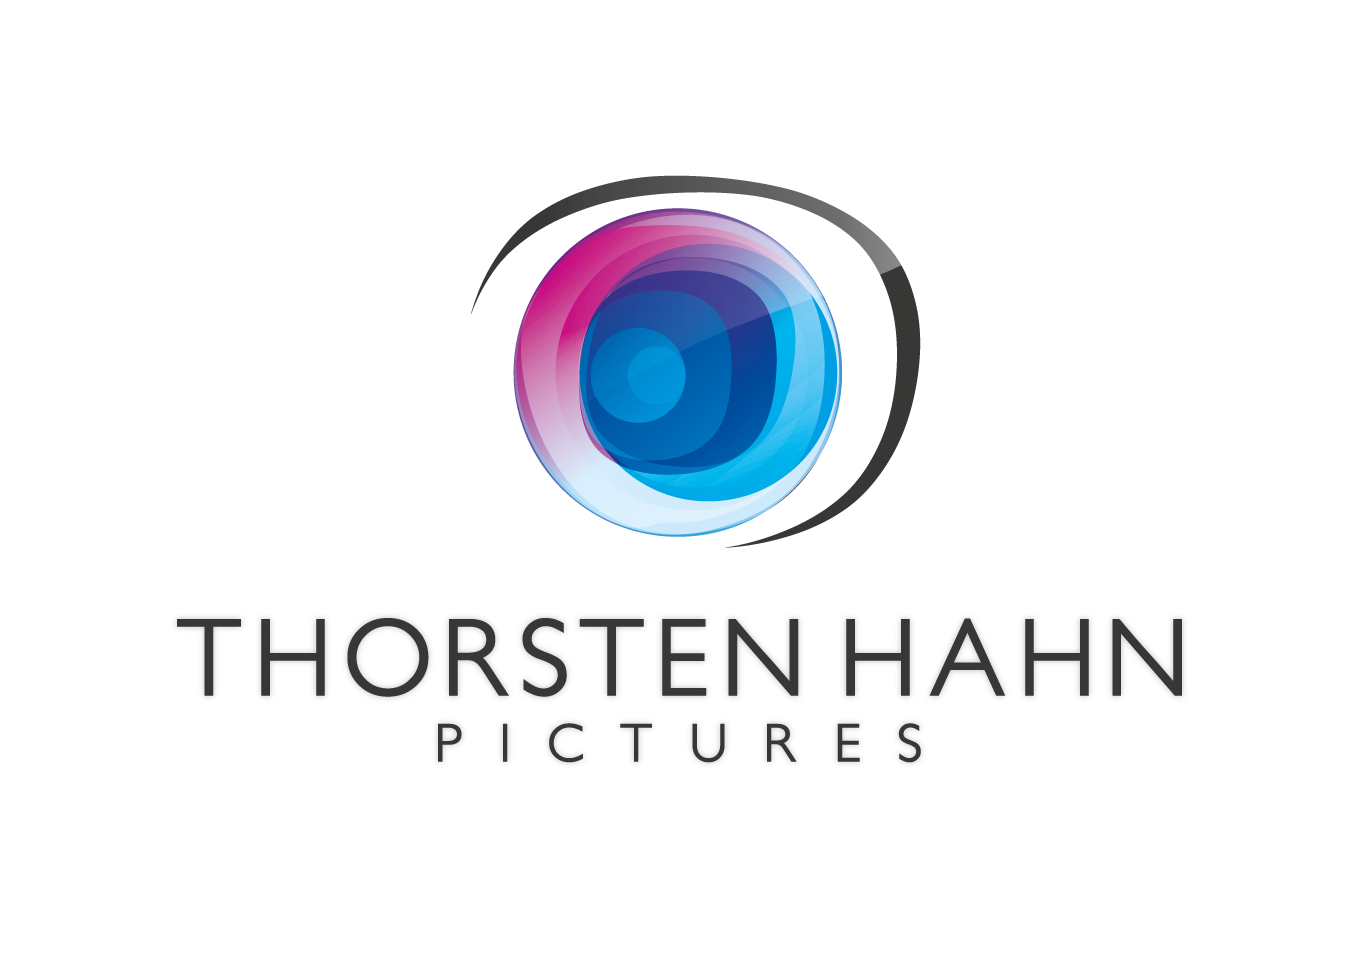 Thorsten Hahn Pictures